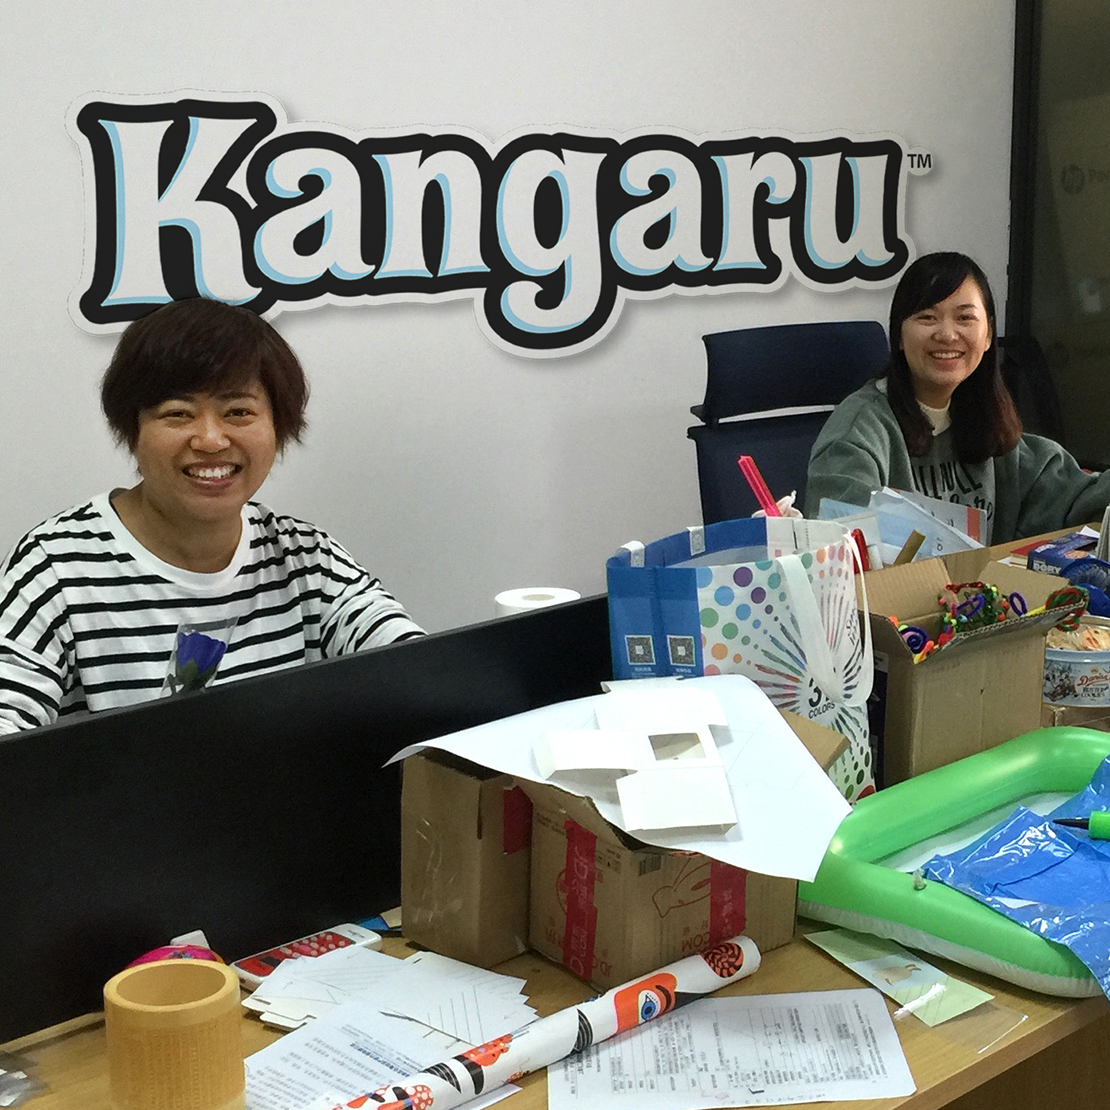 SOURCING & PRODUCT TEAM - The Ningbo Kangaru office is a dedicated sourcing team centrally located in China. We have solid relationships with trusted factories and manufacturers of stationery, activities, crafts, party, plush, paper, and toy products.